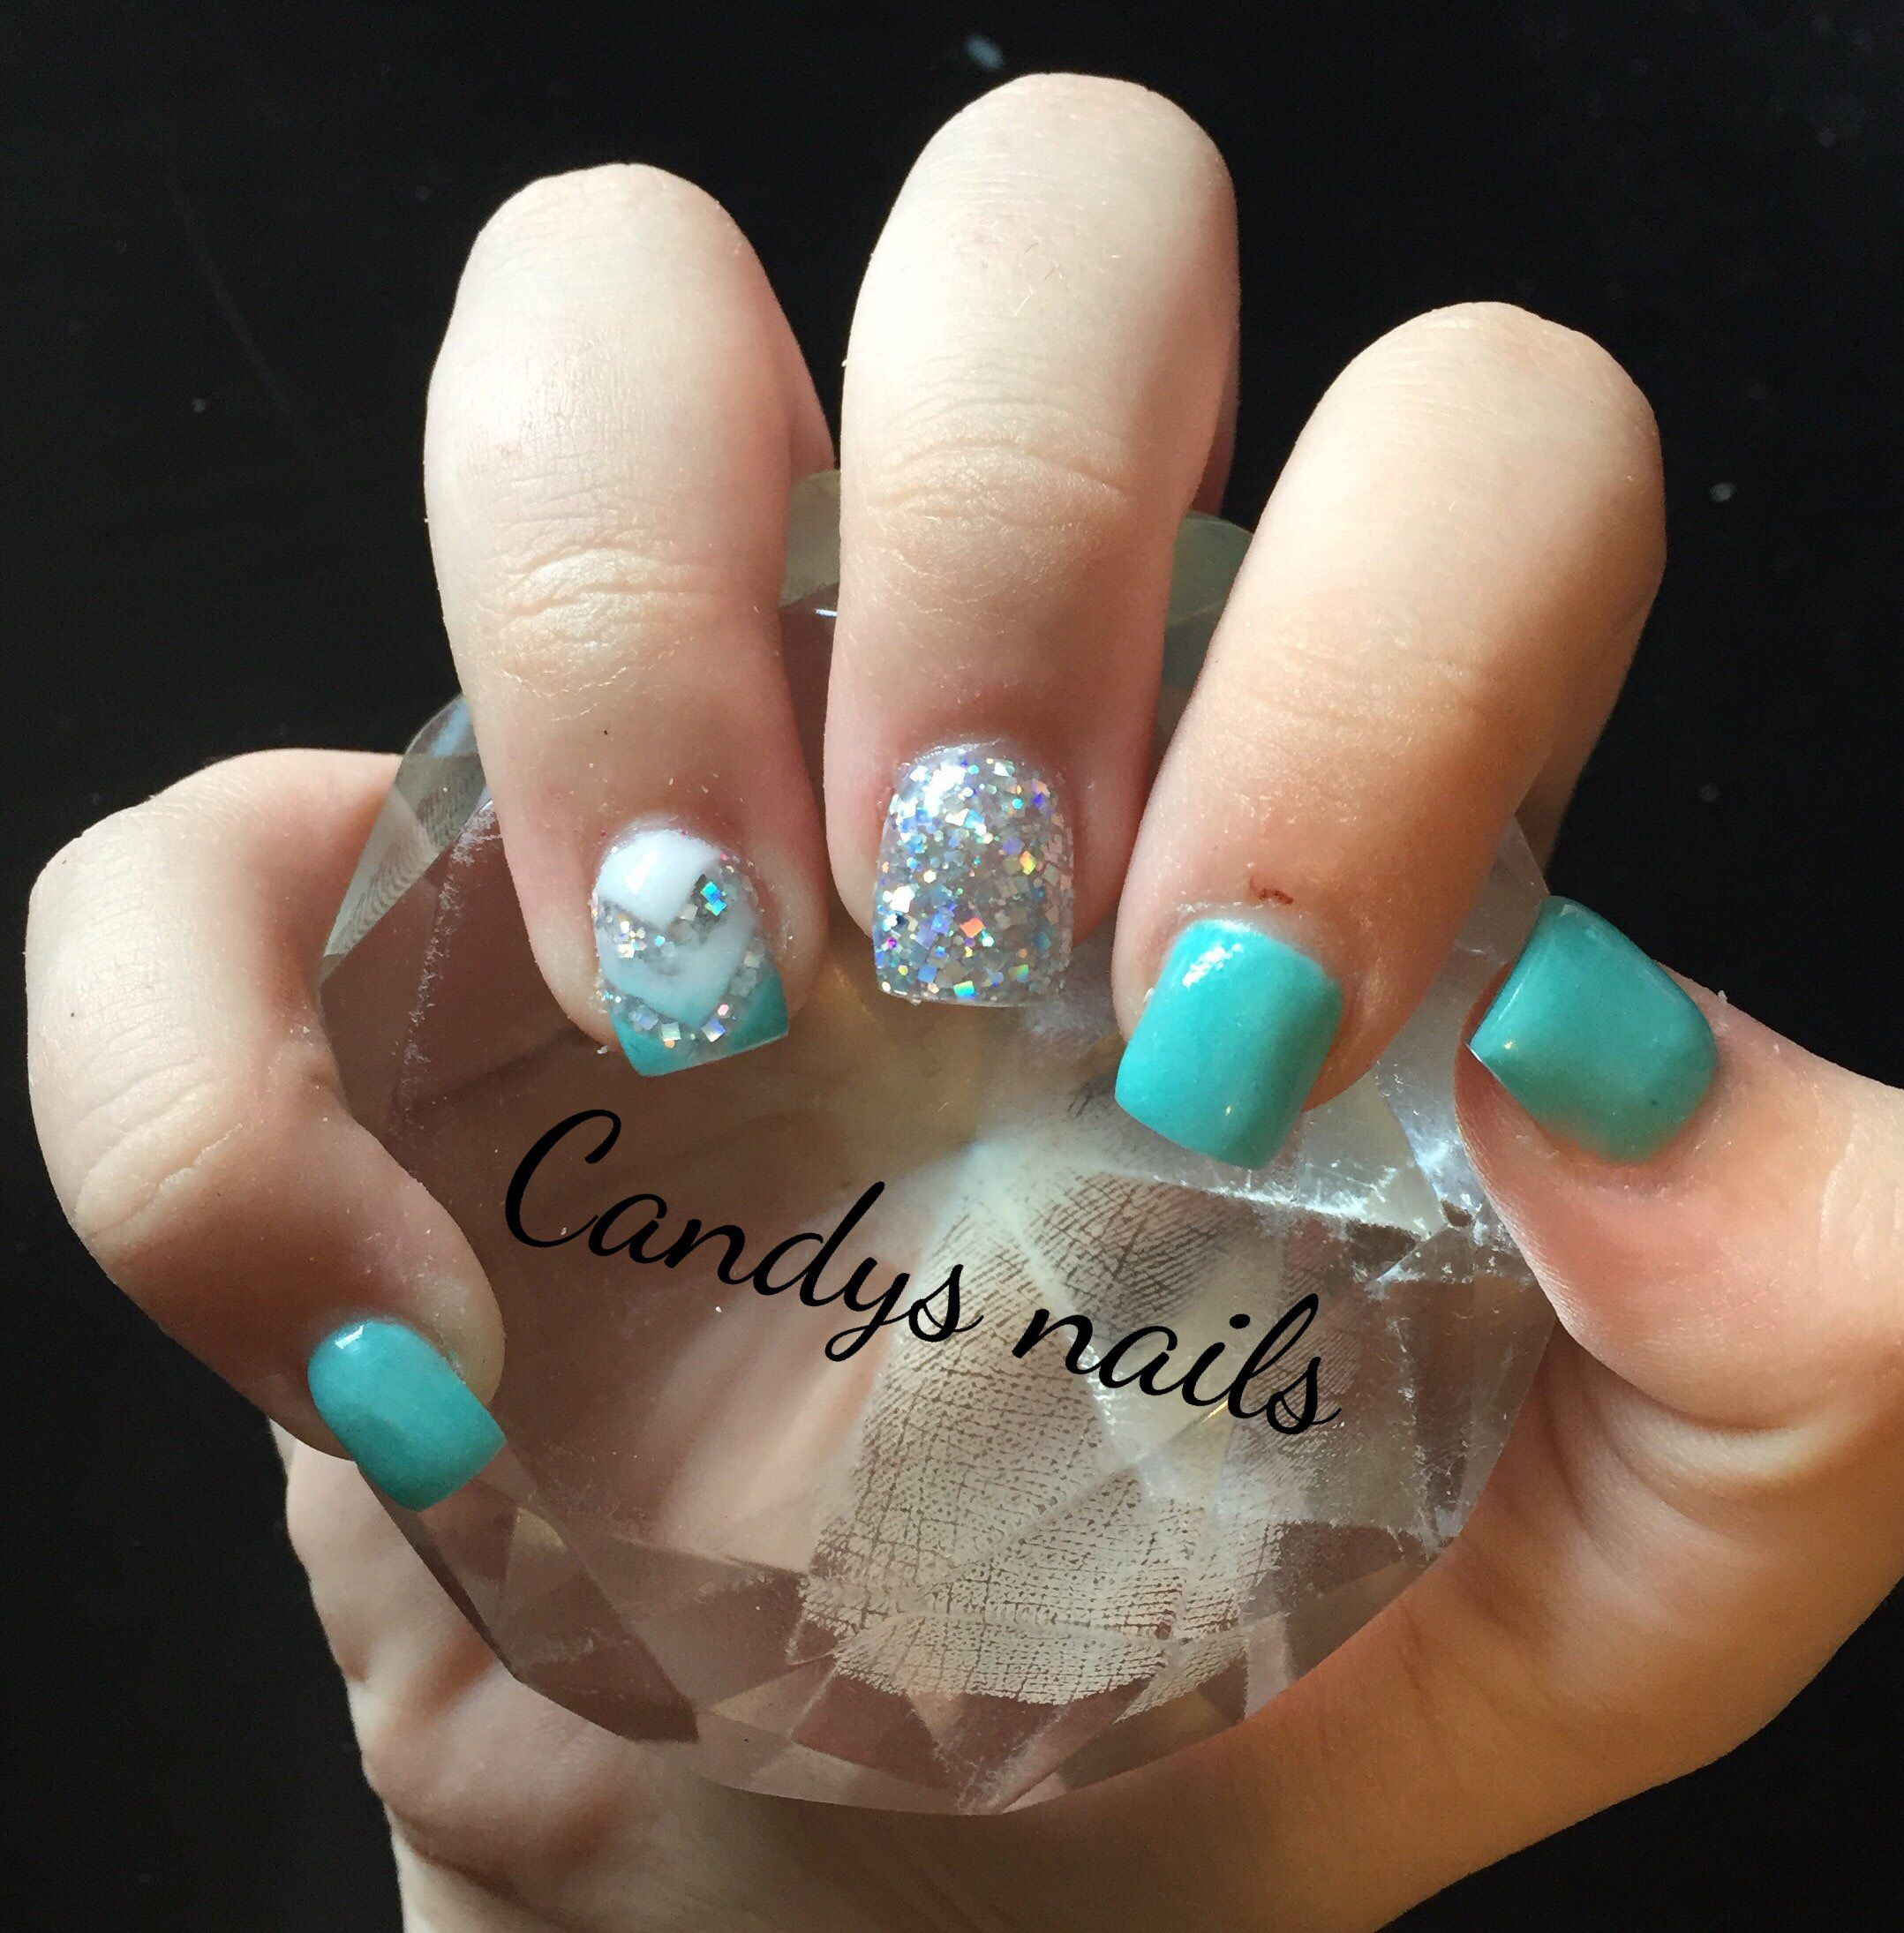 Teal white and silver glitter design acrylic nails!